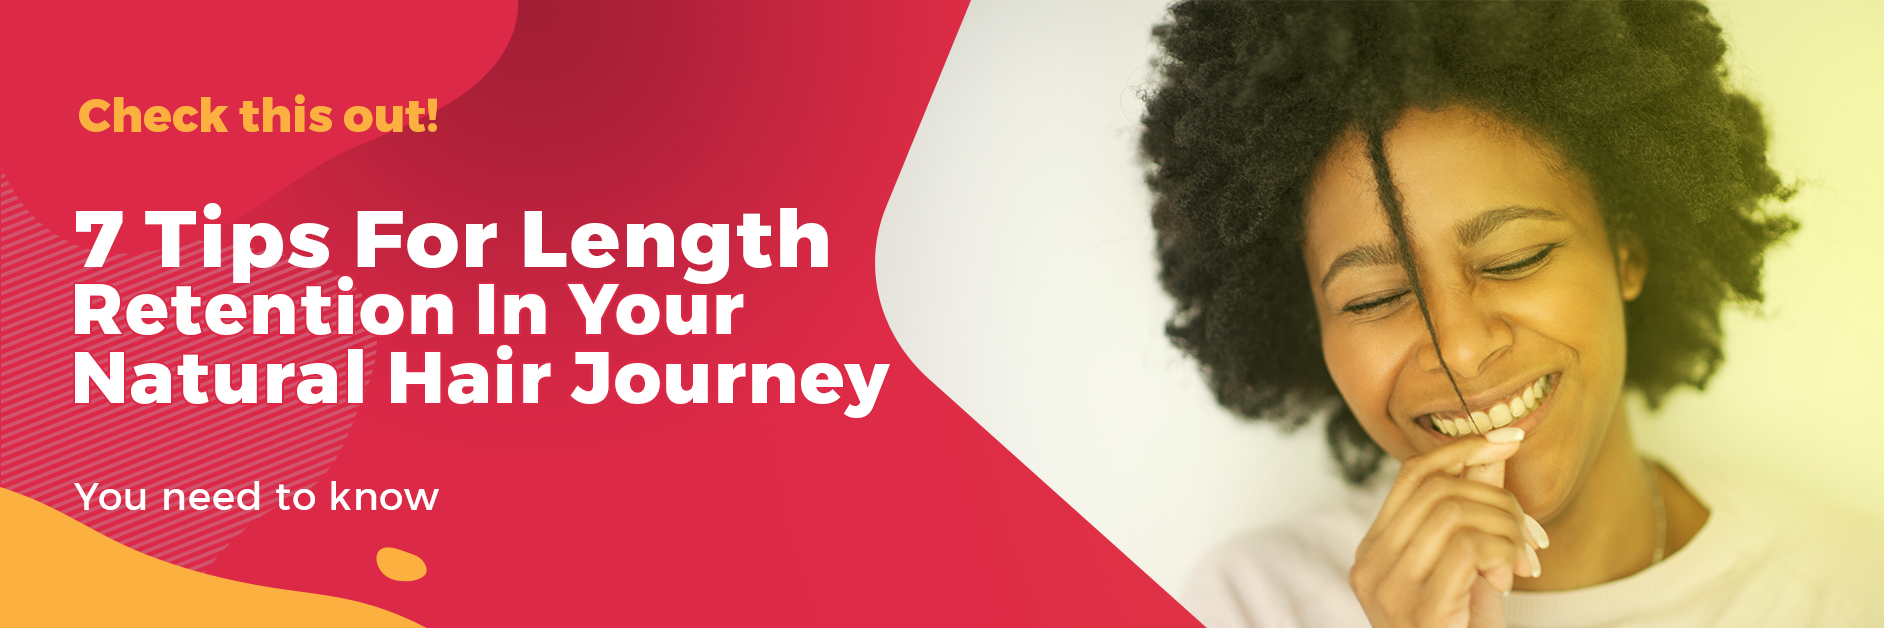 7 tips for length retention in your natural hair journey